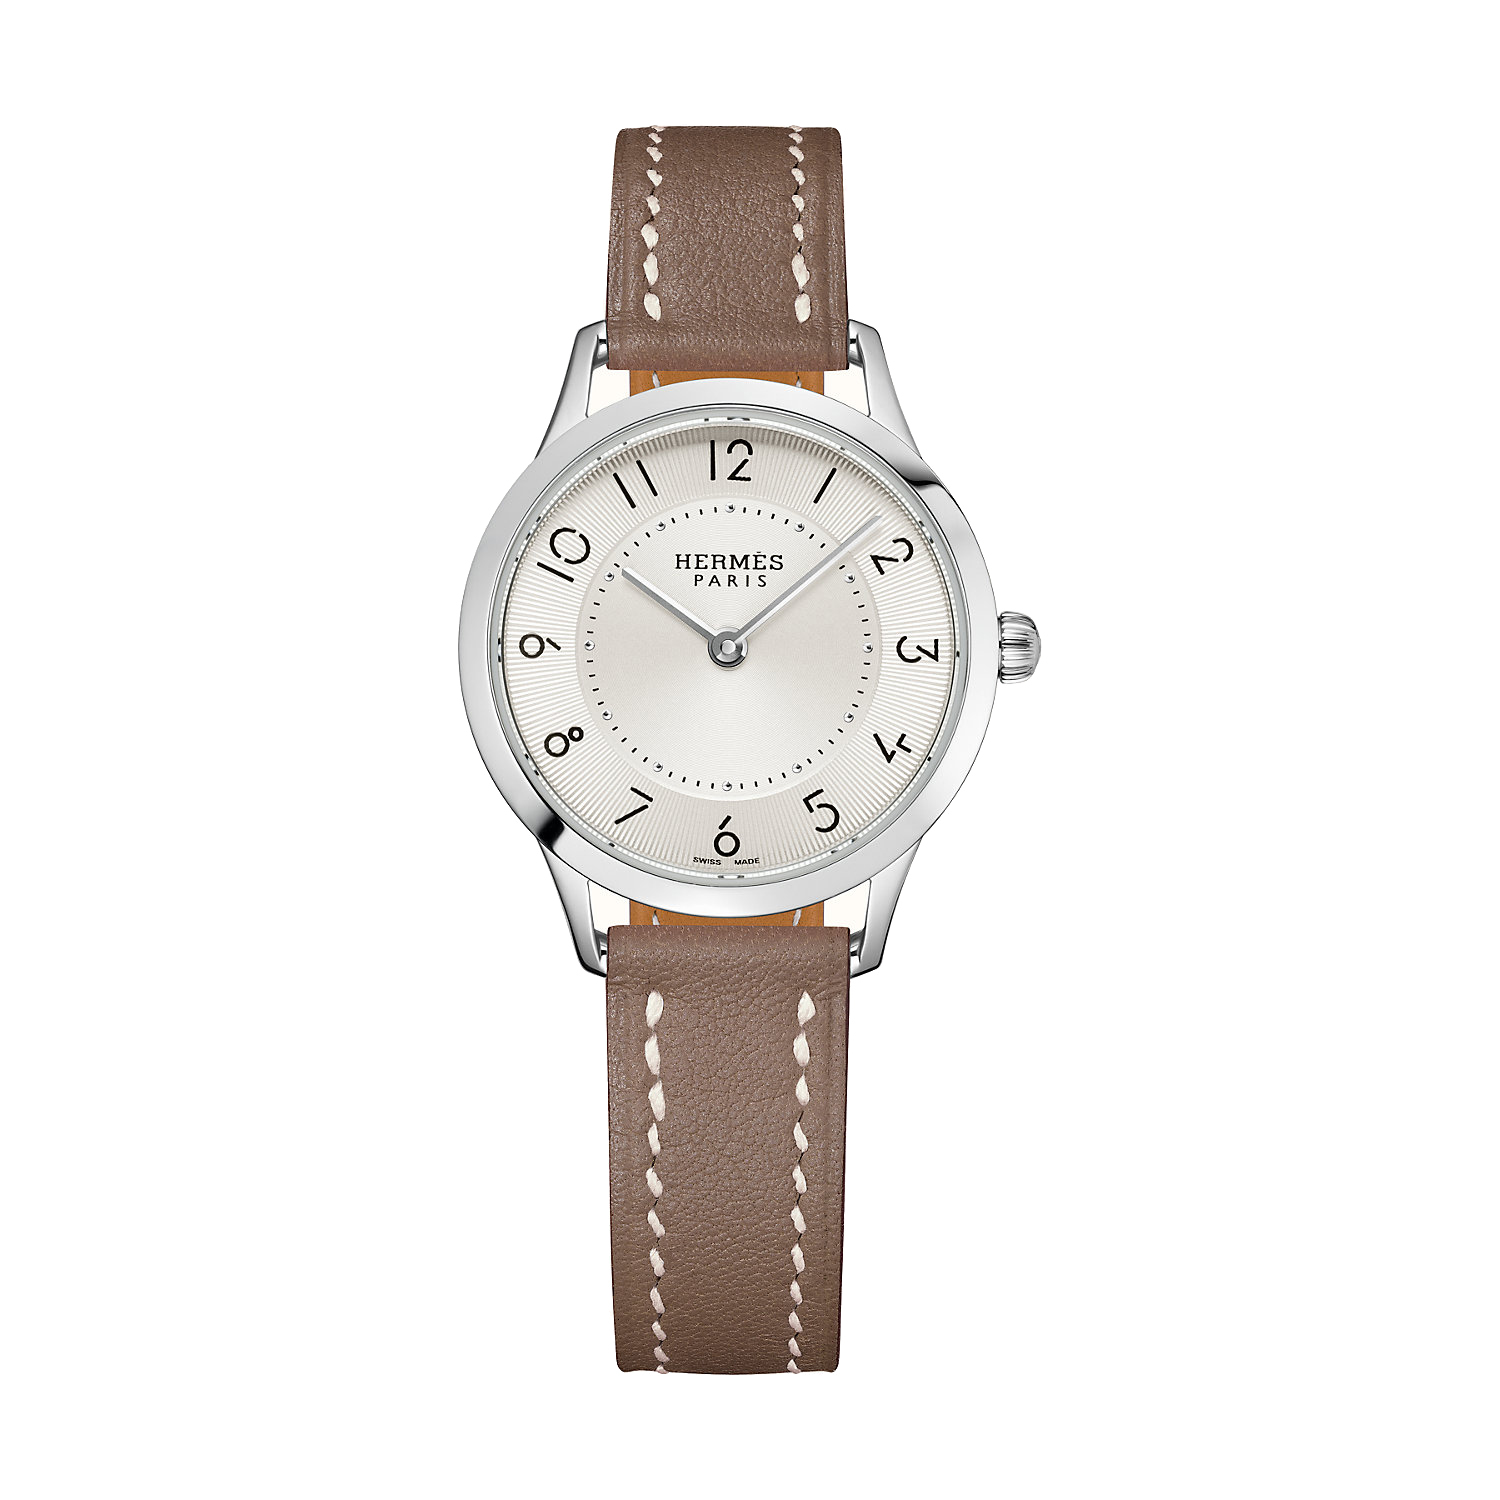 Hermès-slim-d-hermes-25mm-Hall-of-Time-041733WW00